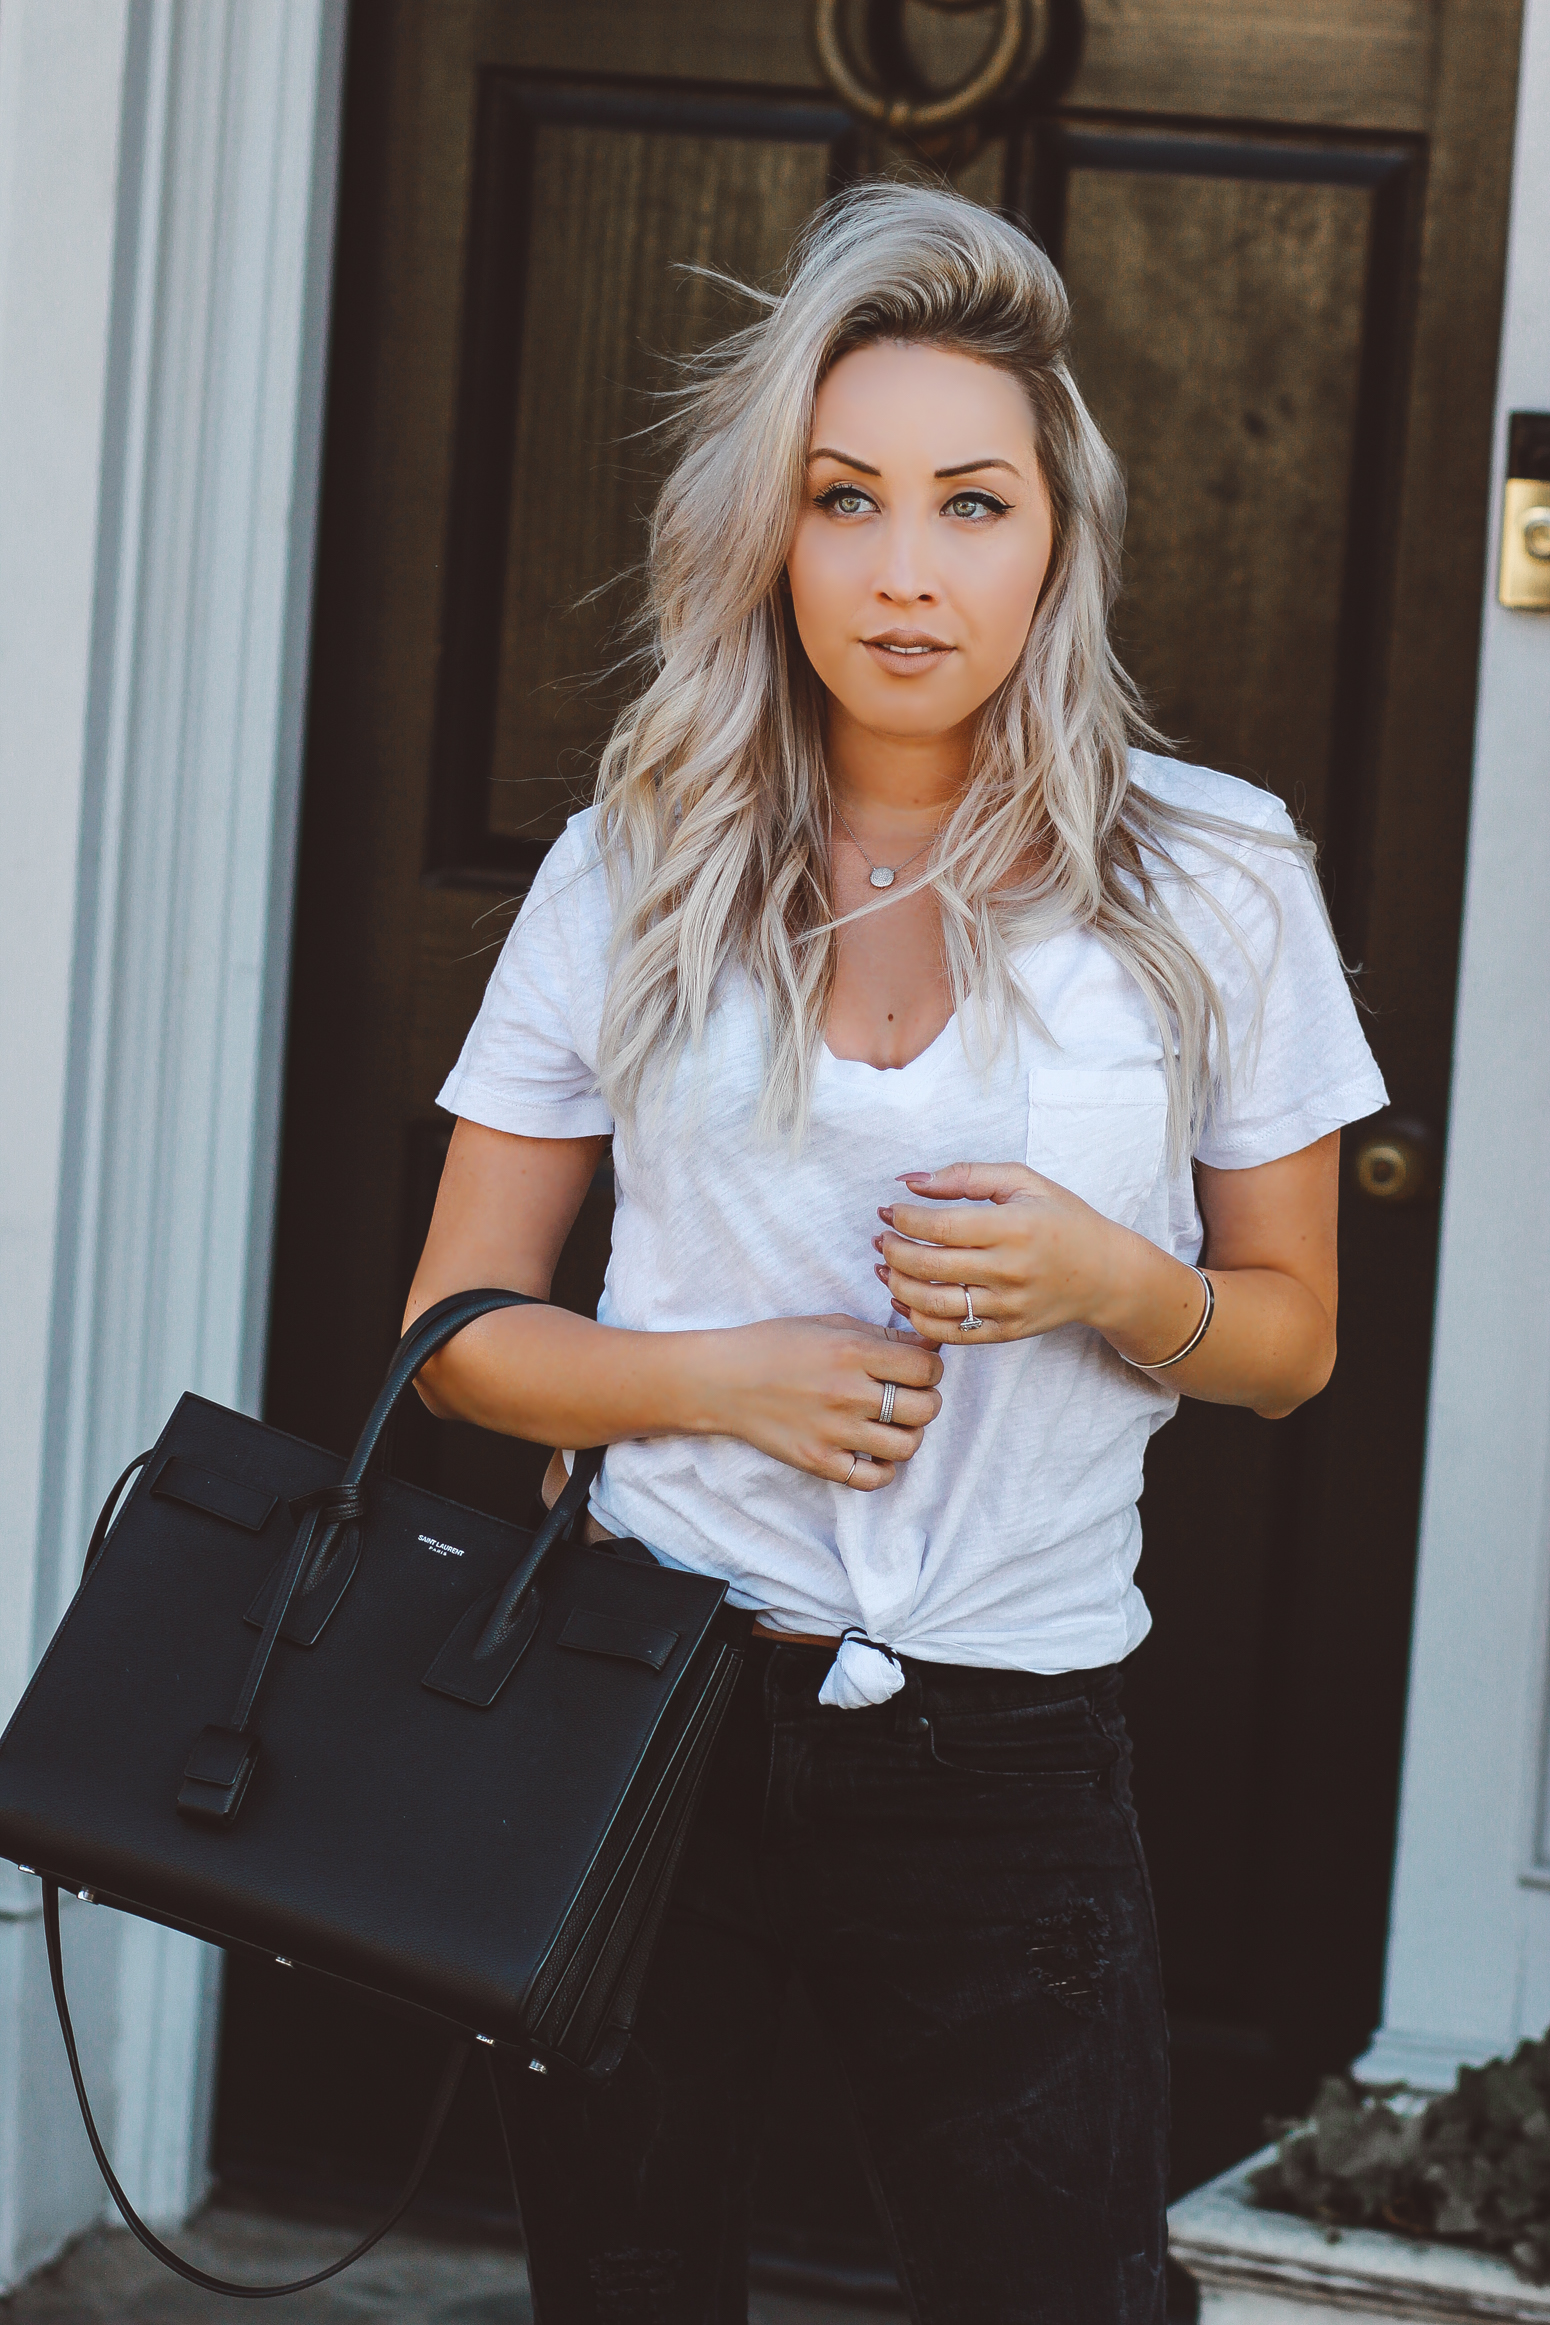 Blondie in the City | YSL Bag | Saint Laurent Sac De Jour Bag | Pink Shoes